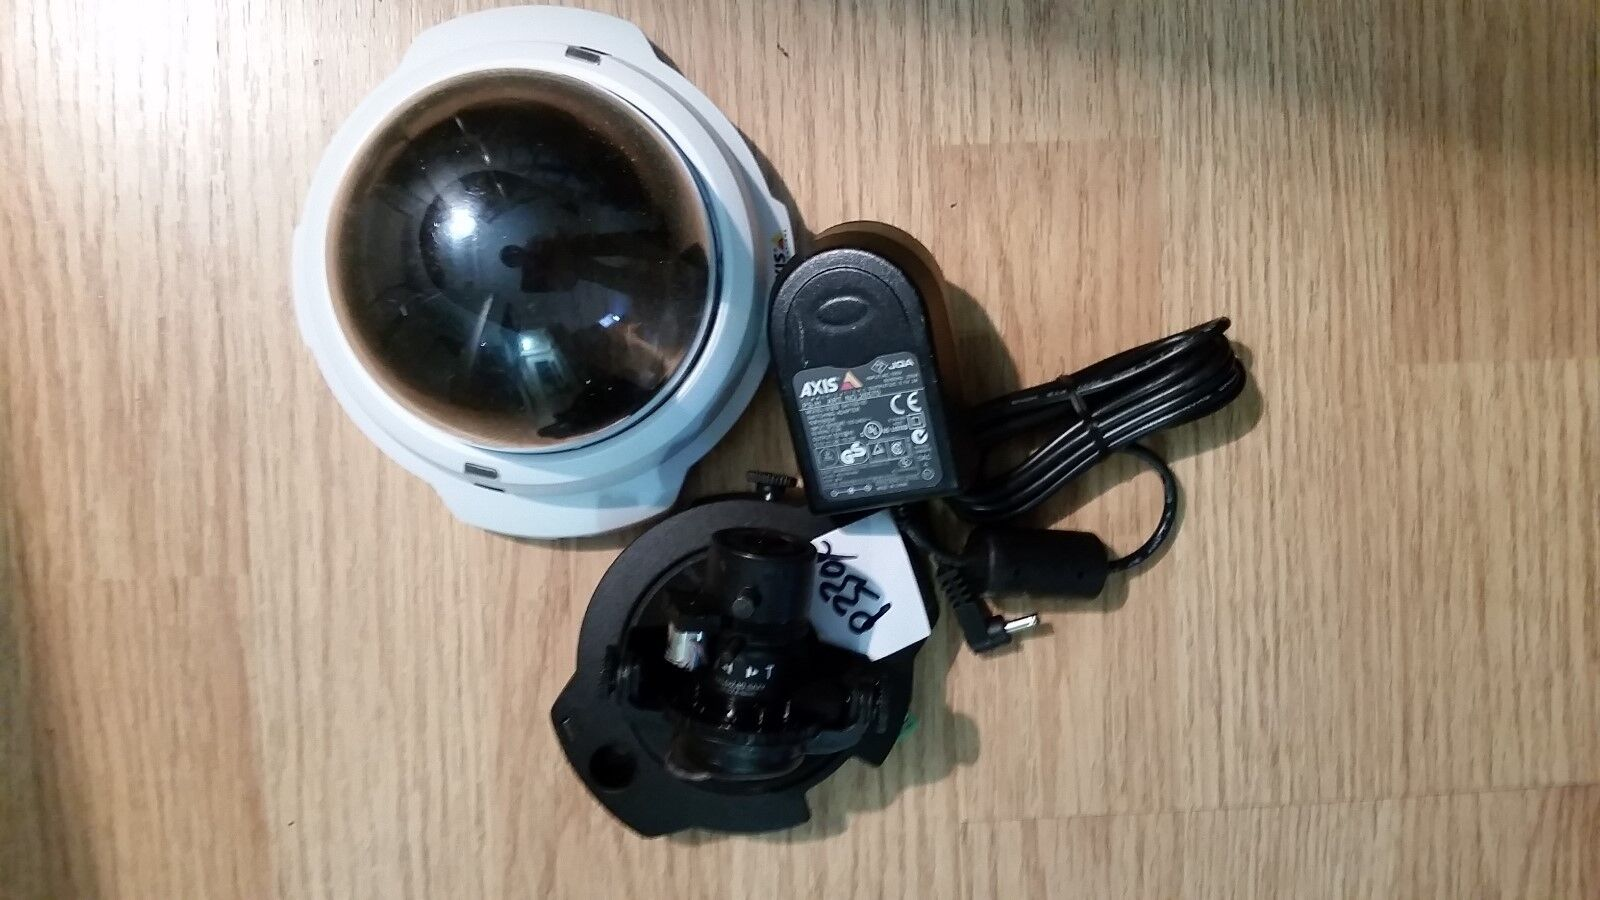 Axis P3304 Security Camera 720p Megapixel POE Power adapter Excellent Condition